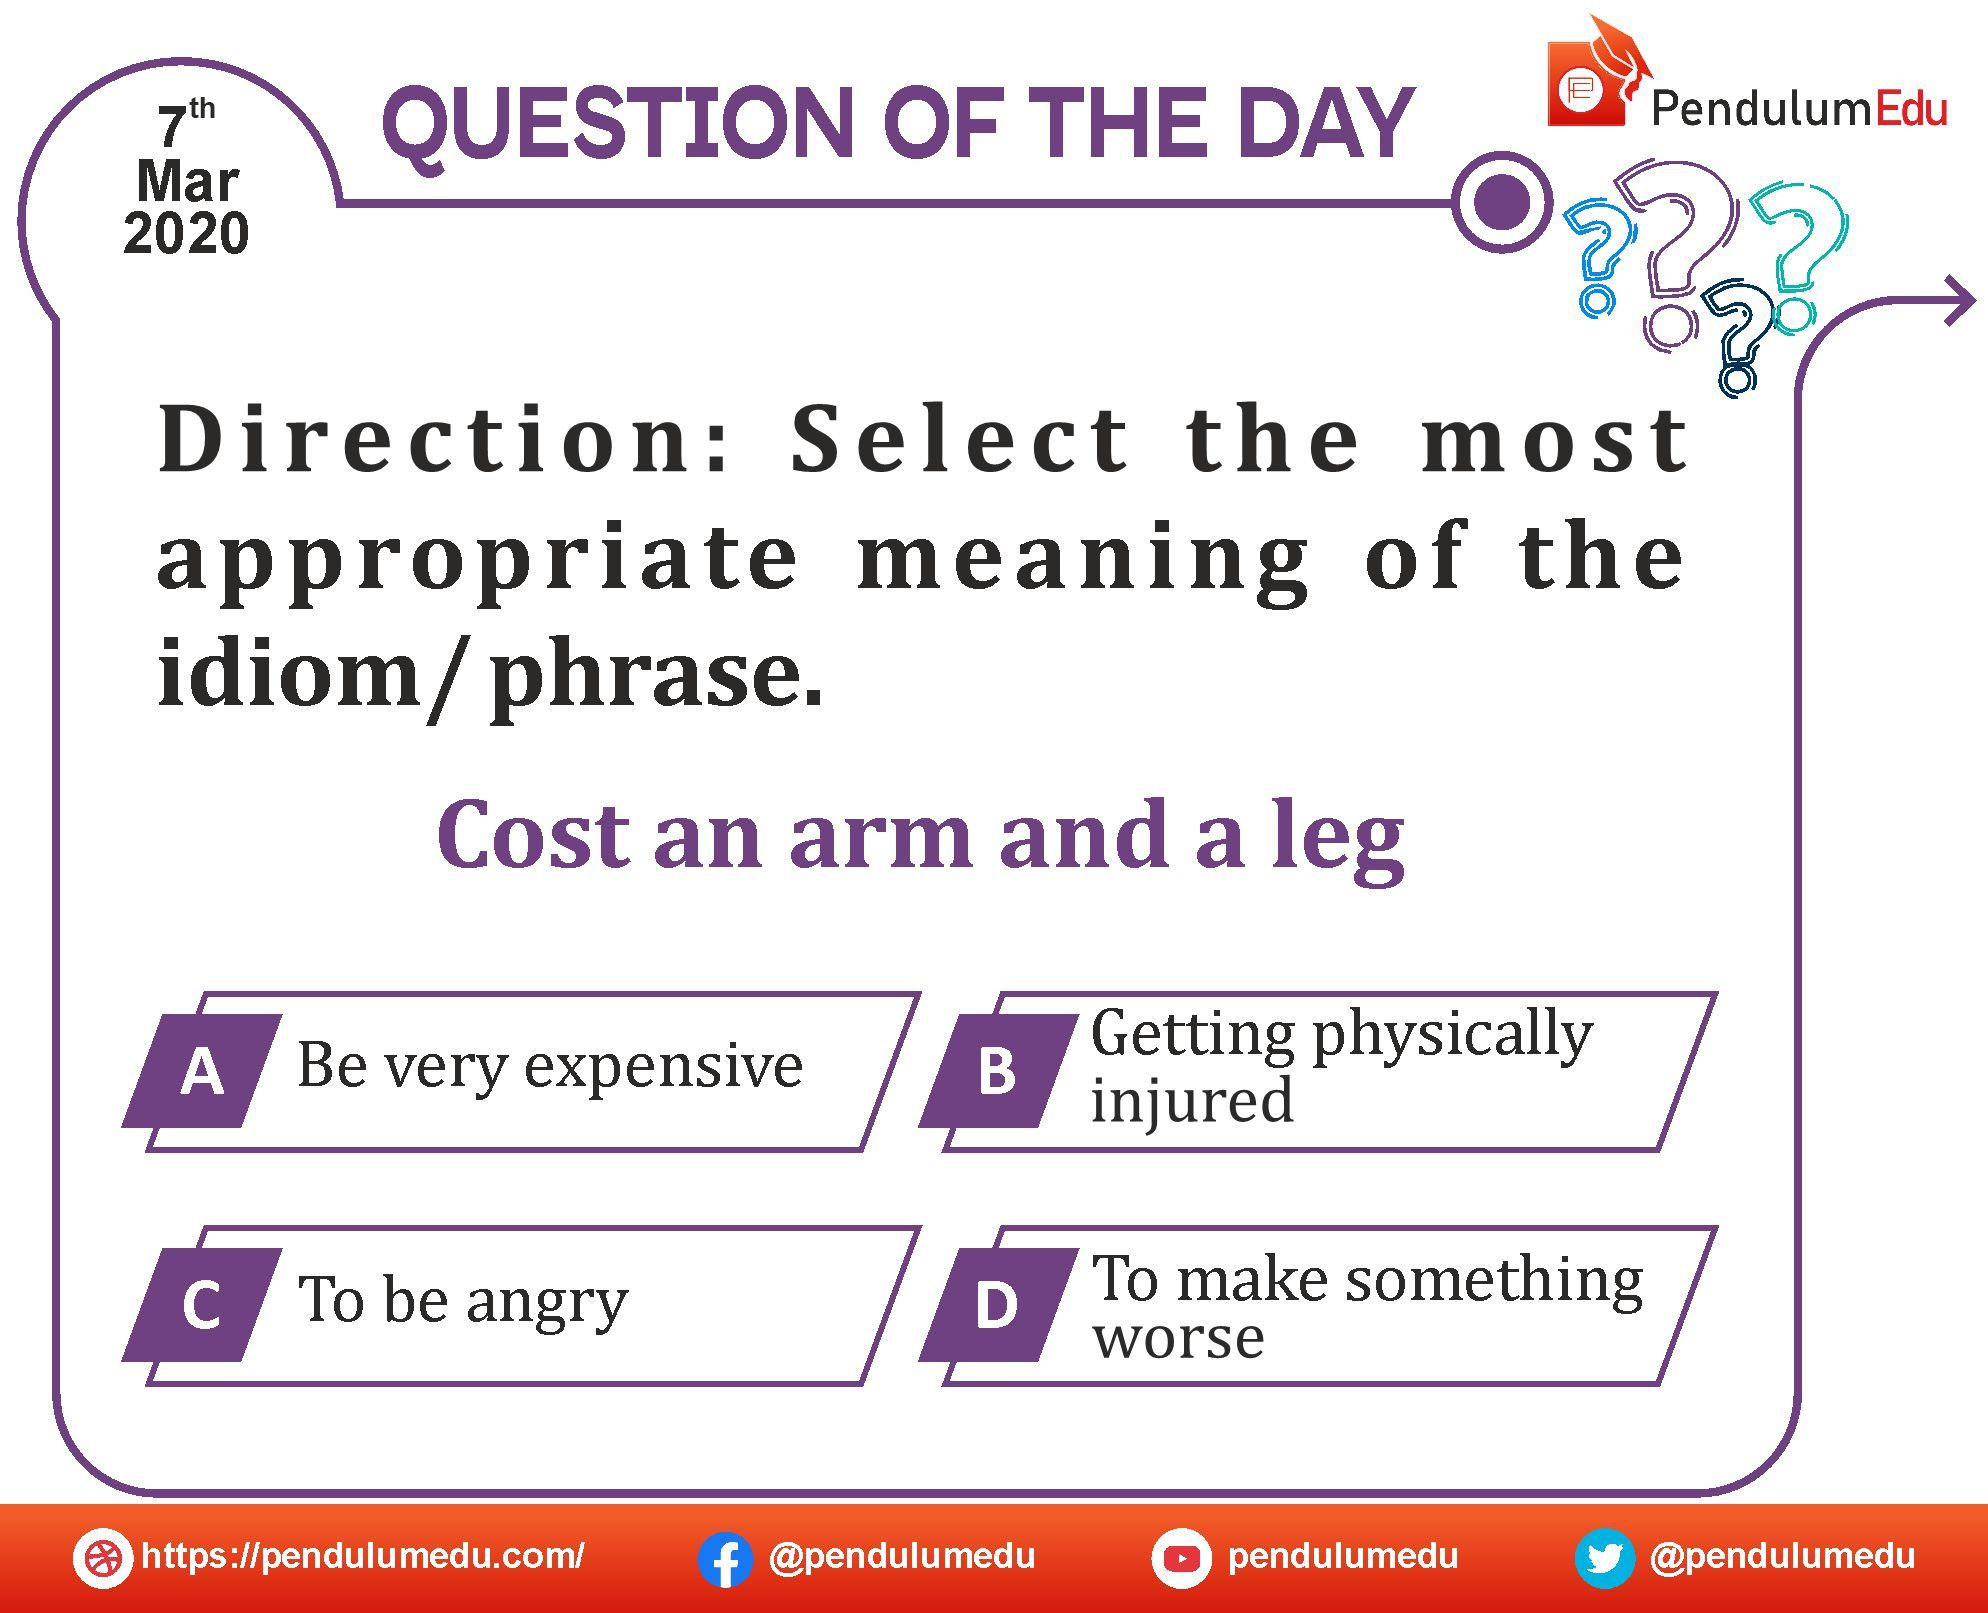 An Arm And A Leg Idiom Meaning In Hindi Qotd In 2020 Idioms And Phrases Question Of The Day Idioms